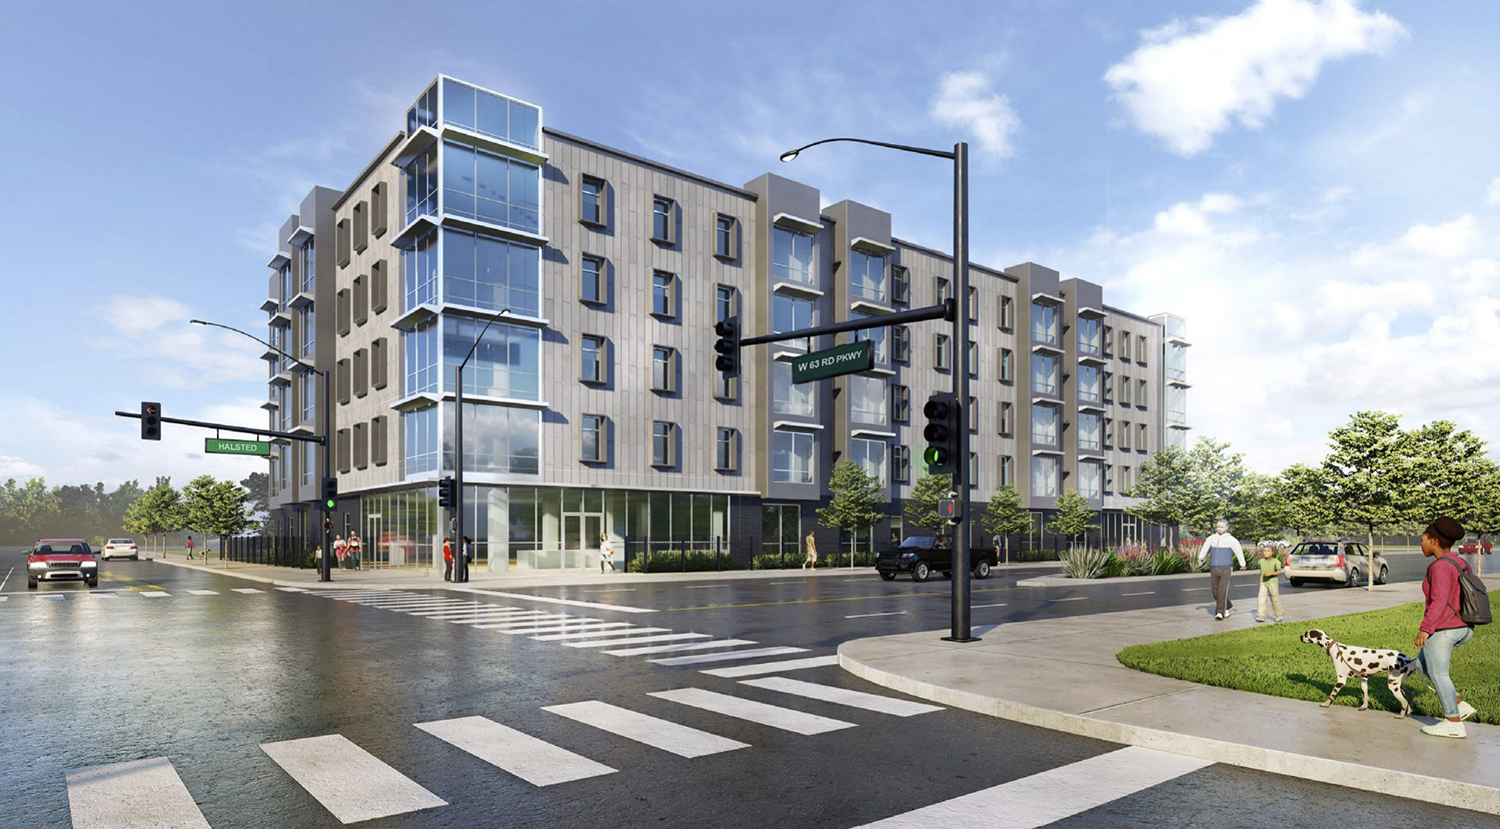 6100 S Halsted Street. Rendering by RDL Architects and Johnson & Lee Architects